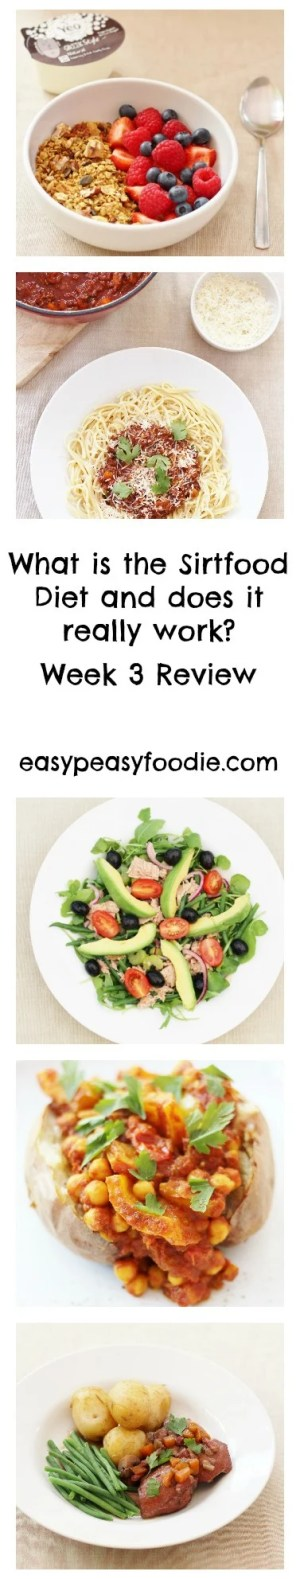 How to Lose Weight Well Series 3 Review